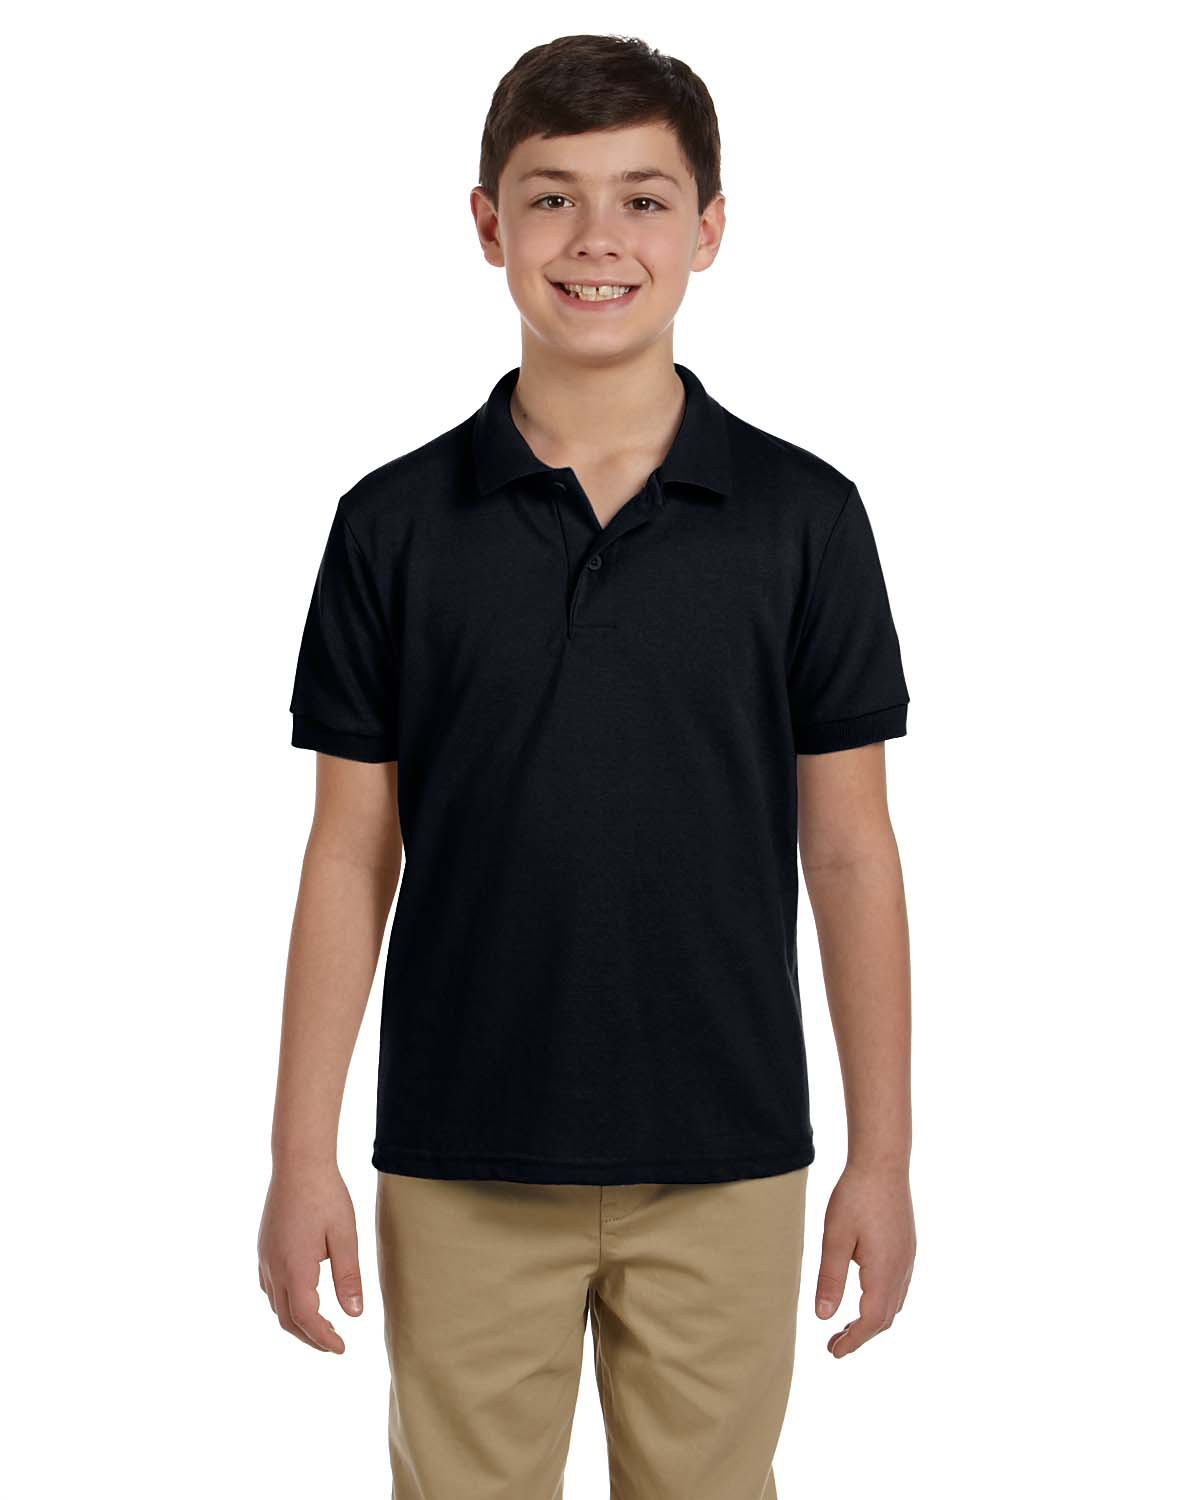 Youth DryBlend® 6.8 oz. Pique Polo